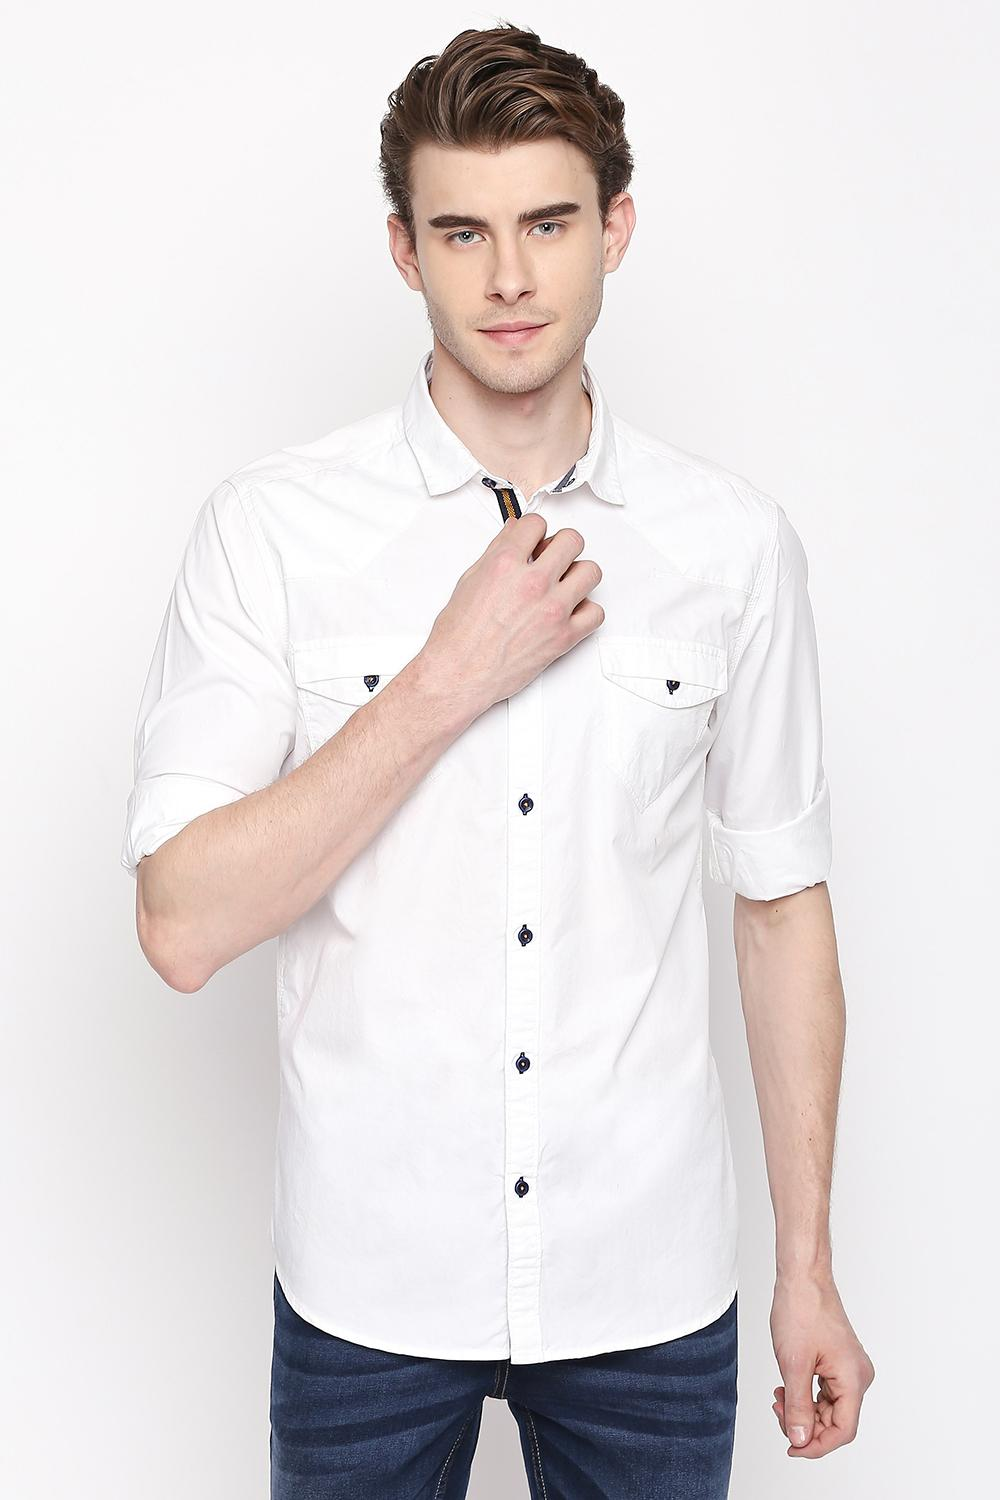 d4c209b4c8bc Buy Mens Casual and Formal Shirts Online with Affordable Price in ...